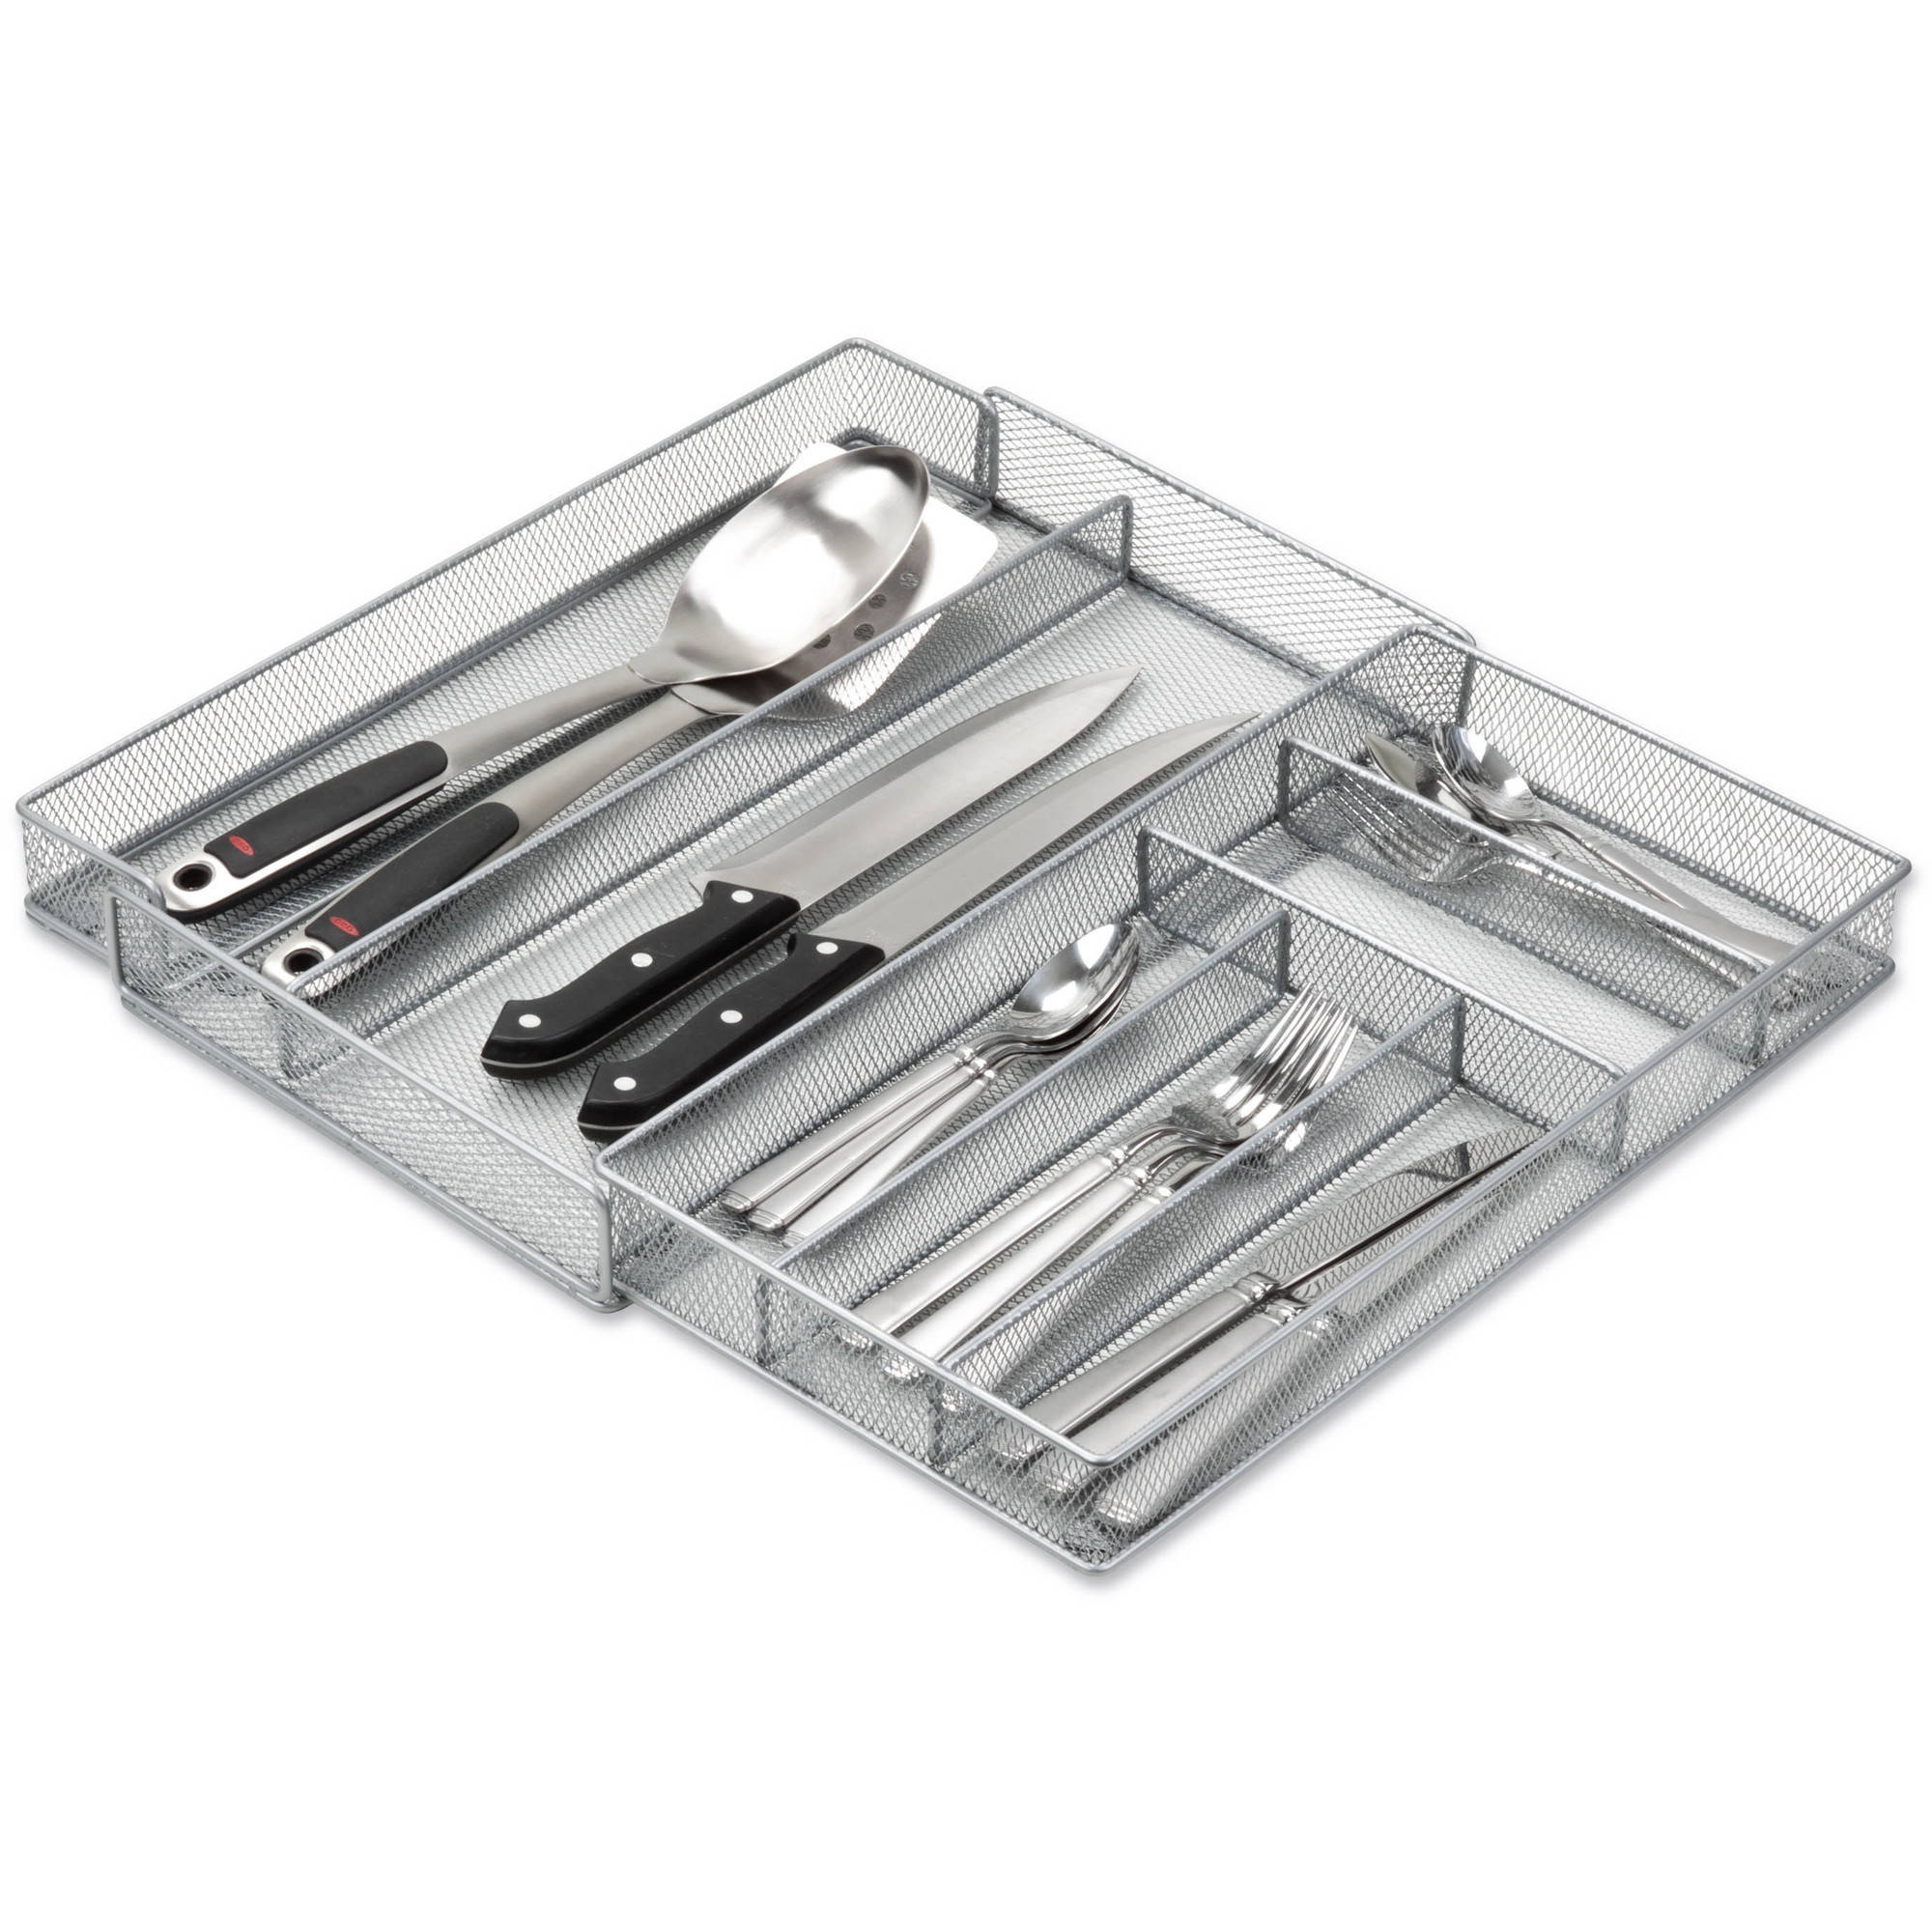 Honey-Can-Do Steel Mesh 7-Compartment Expandable Cutlery and Utensil Organizer Tray